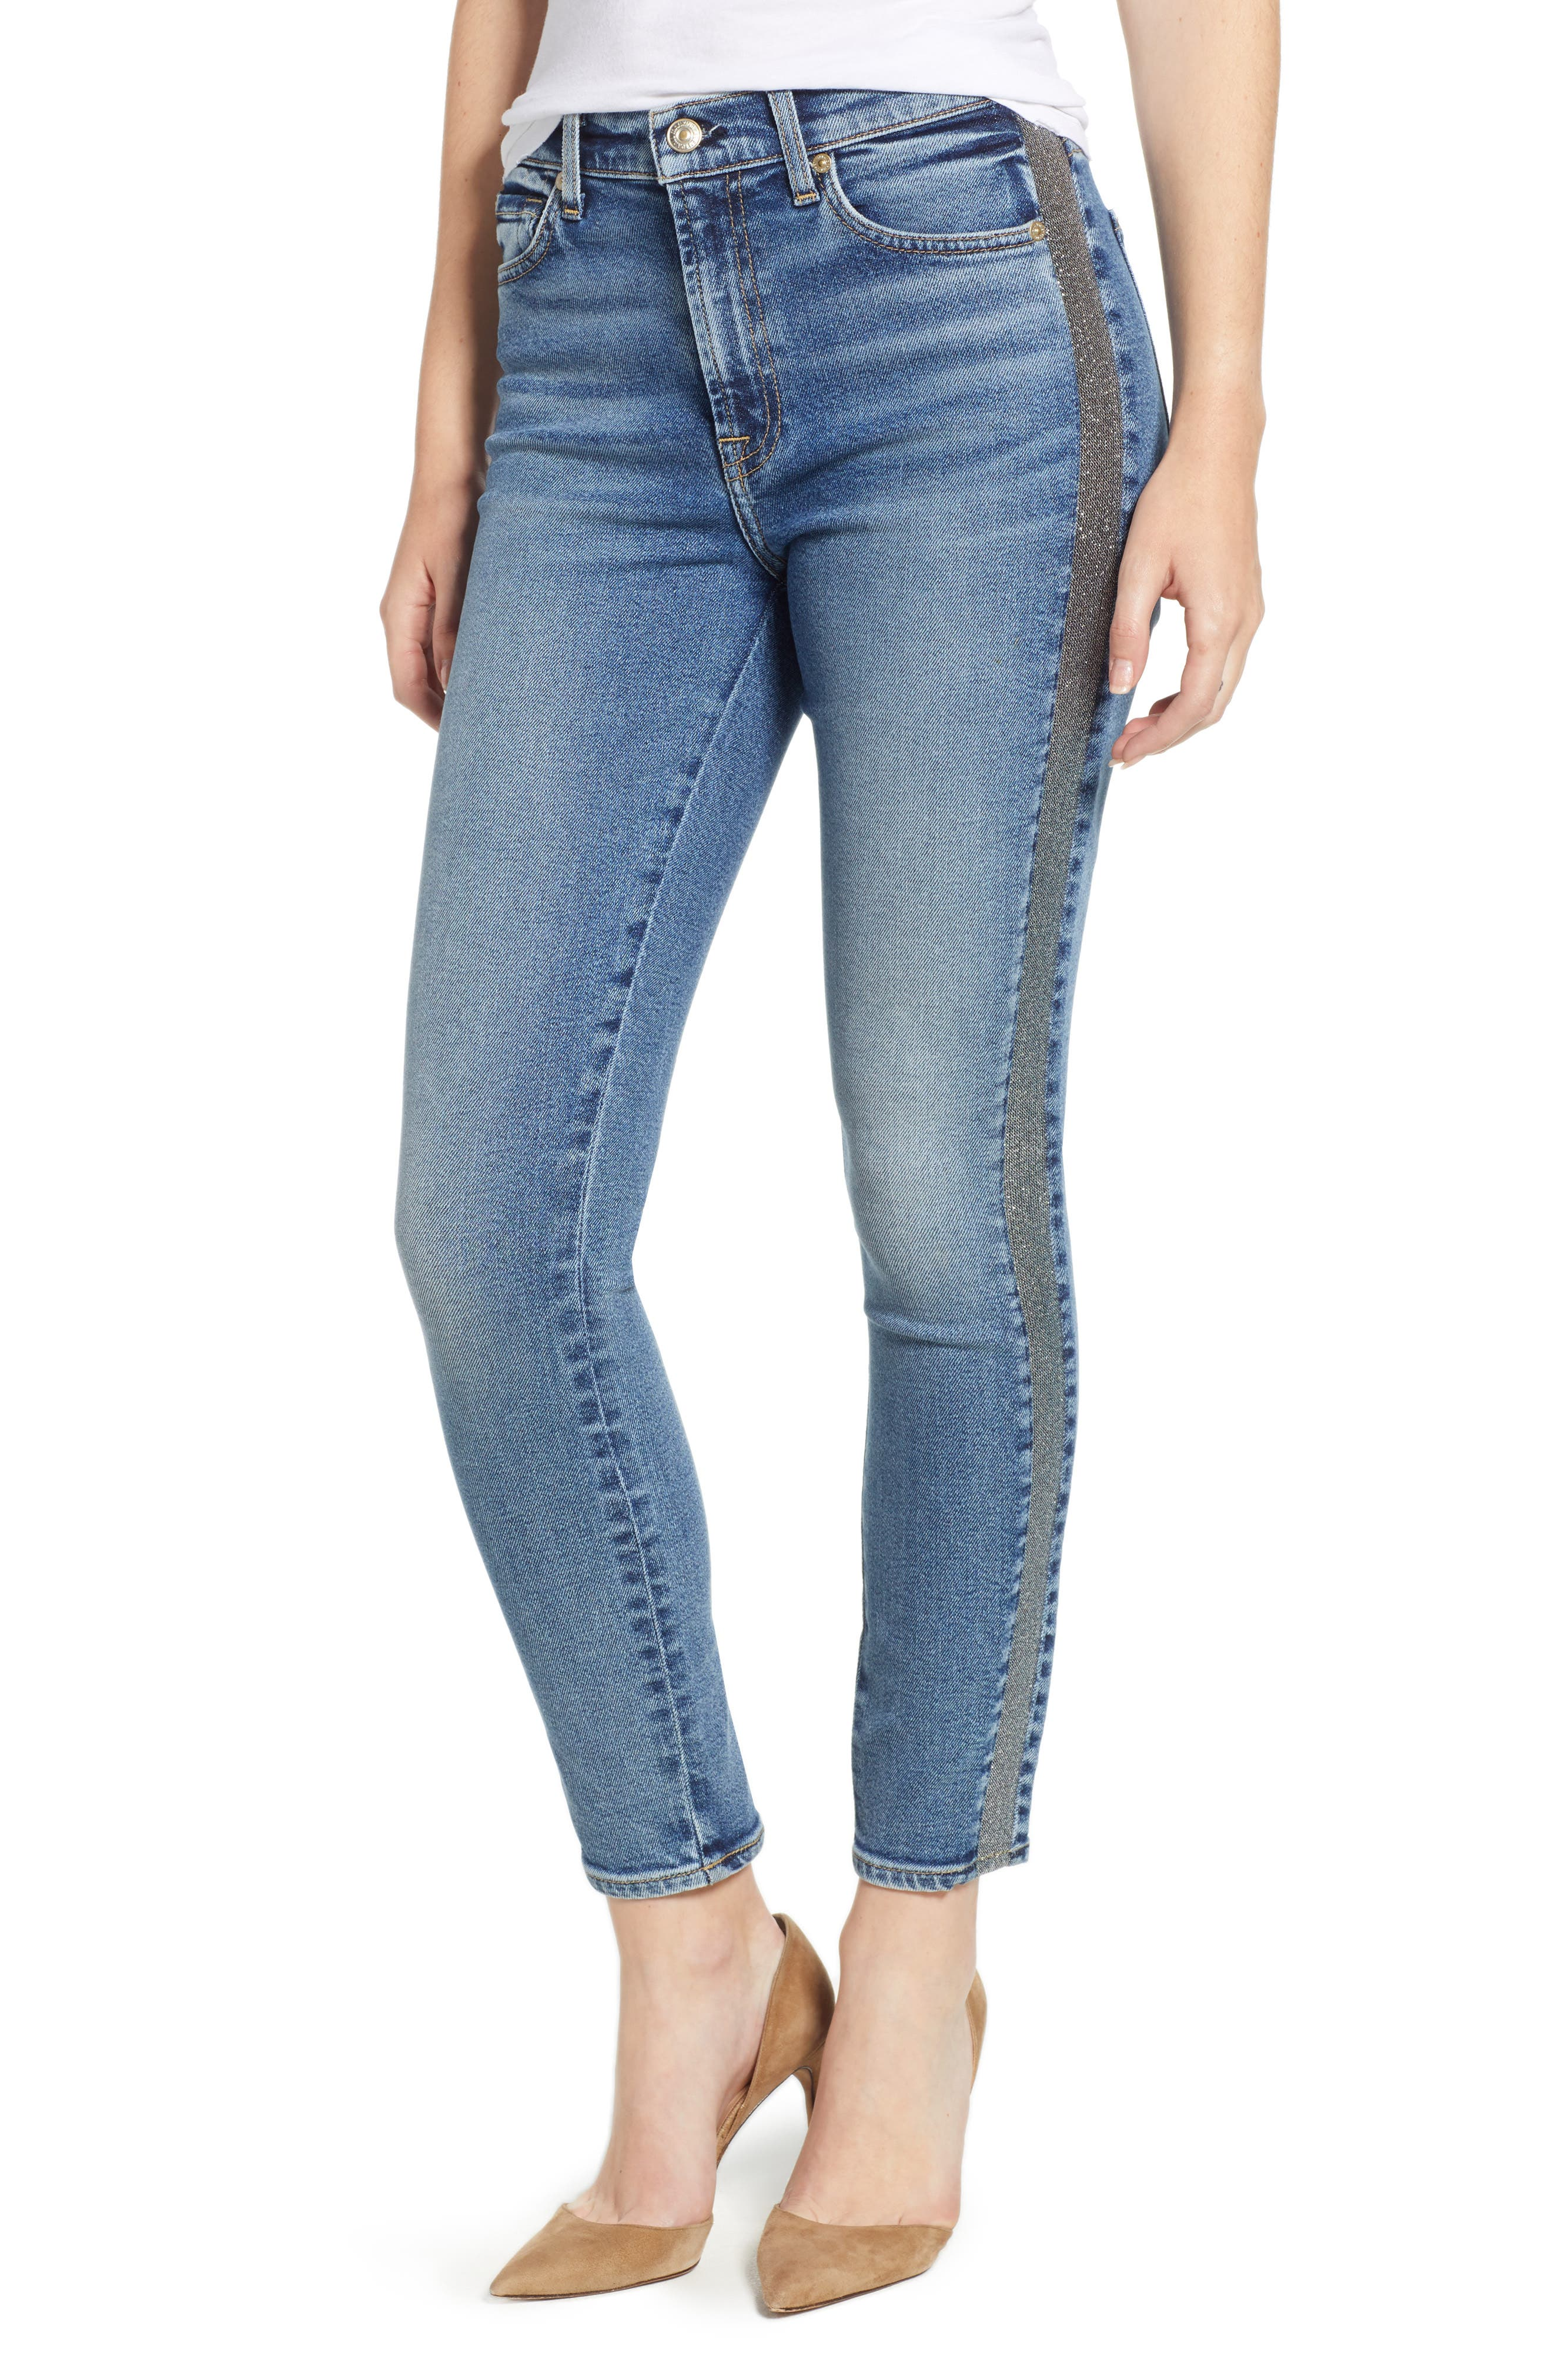 7 FOR ALL MANKIND<SUP>®</SUP>, Luxe Vintage Side Stripe High Waist Ankle Skinny Jeans, Main thumbnail 1, color, 401